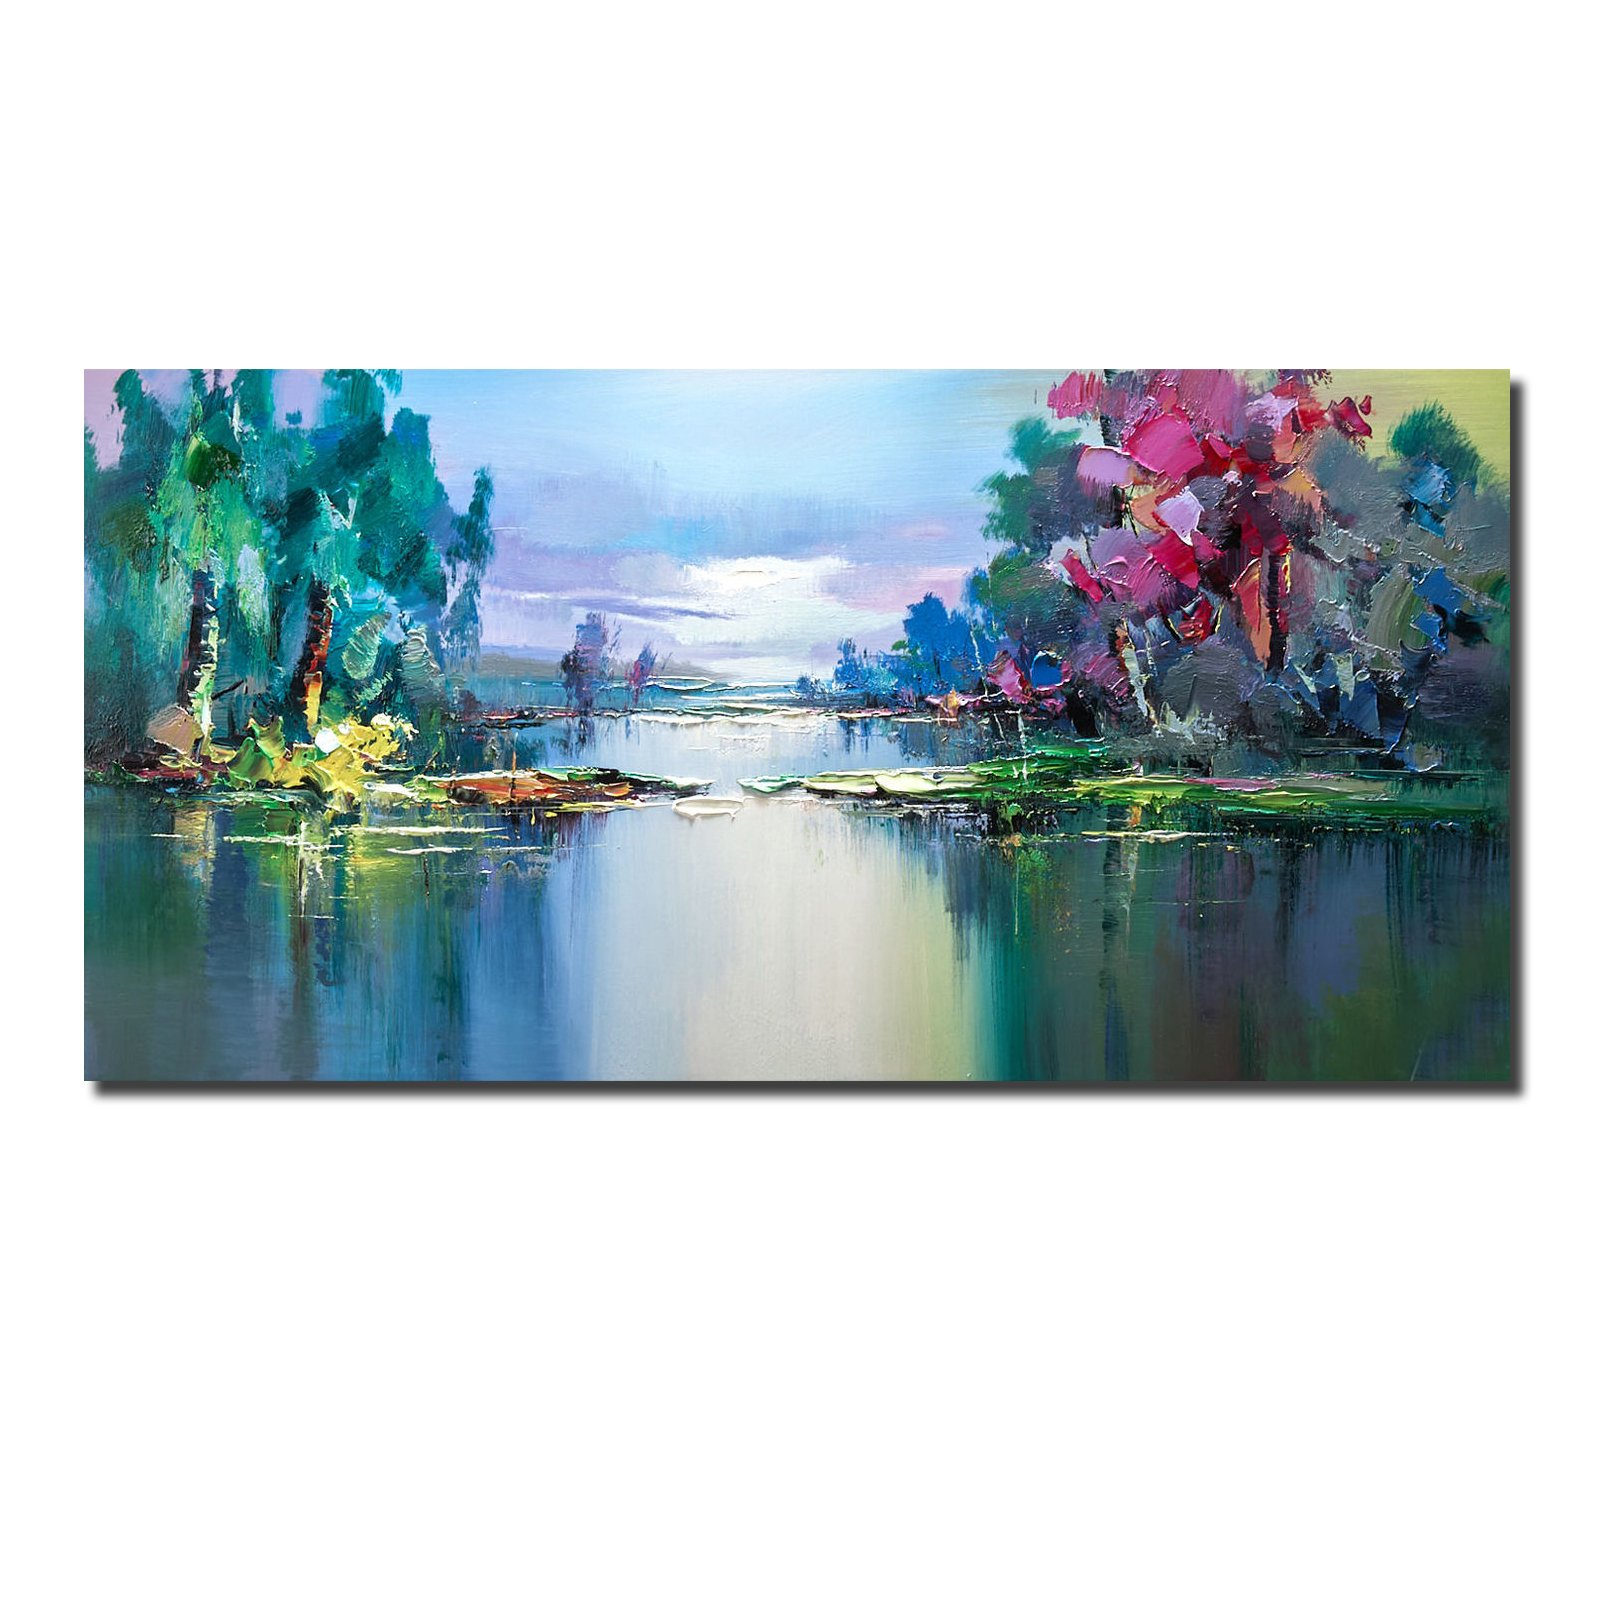 QINGYAZI Hand-Painted Modern Abstract 3D Knife Painting Landscape Bedroom Living Room Hotel Home Wall Art (Blue, 24 x 48 inch x 1PC (60x120cmx1pc))